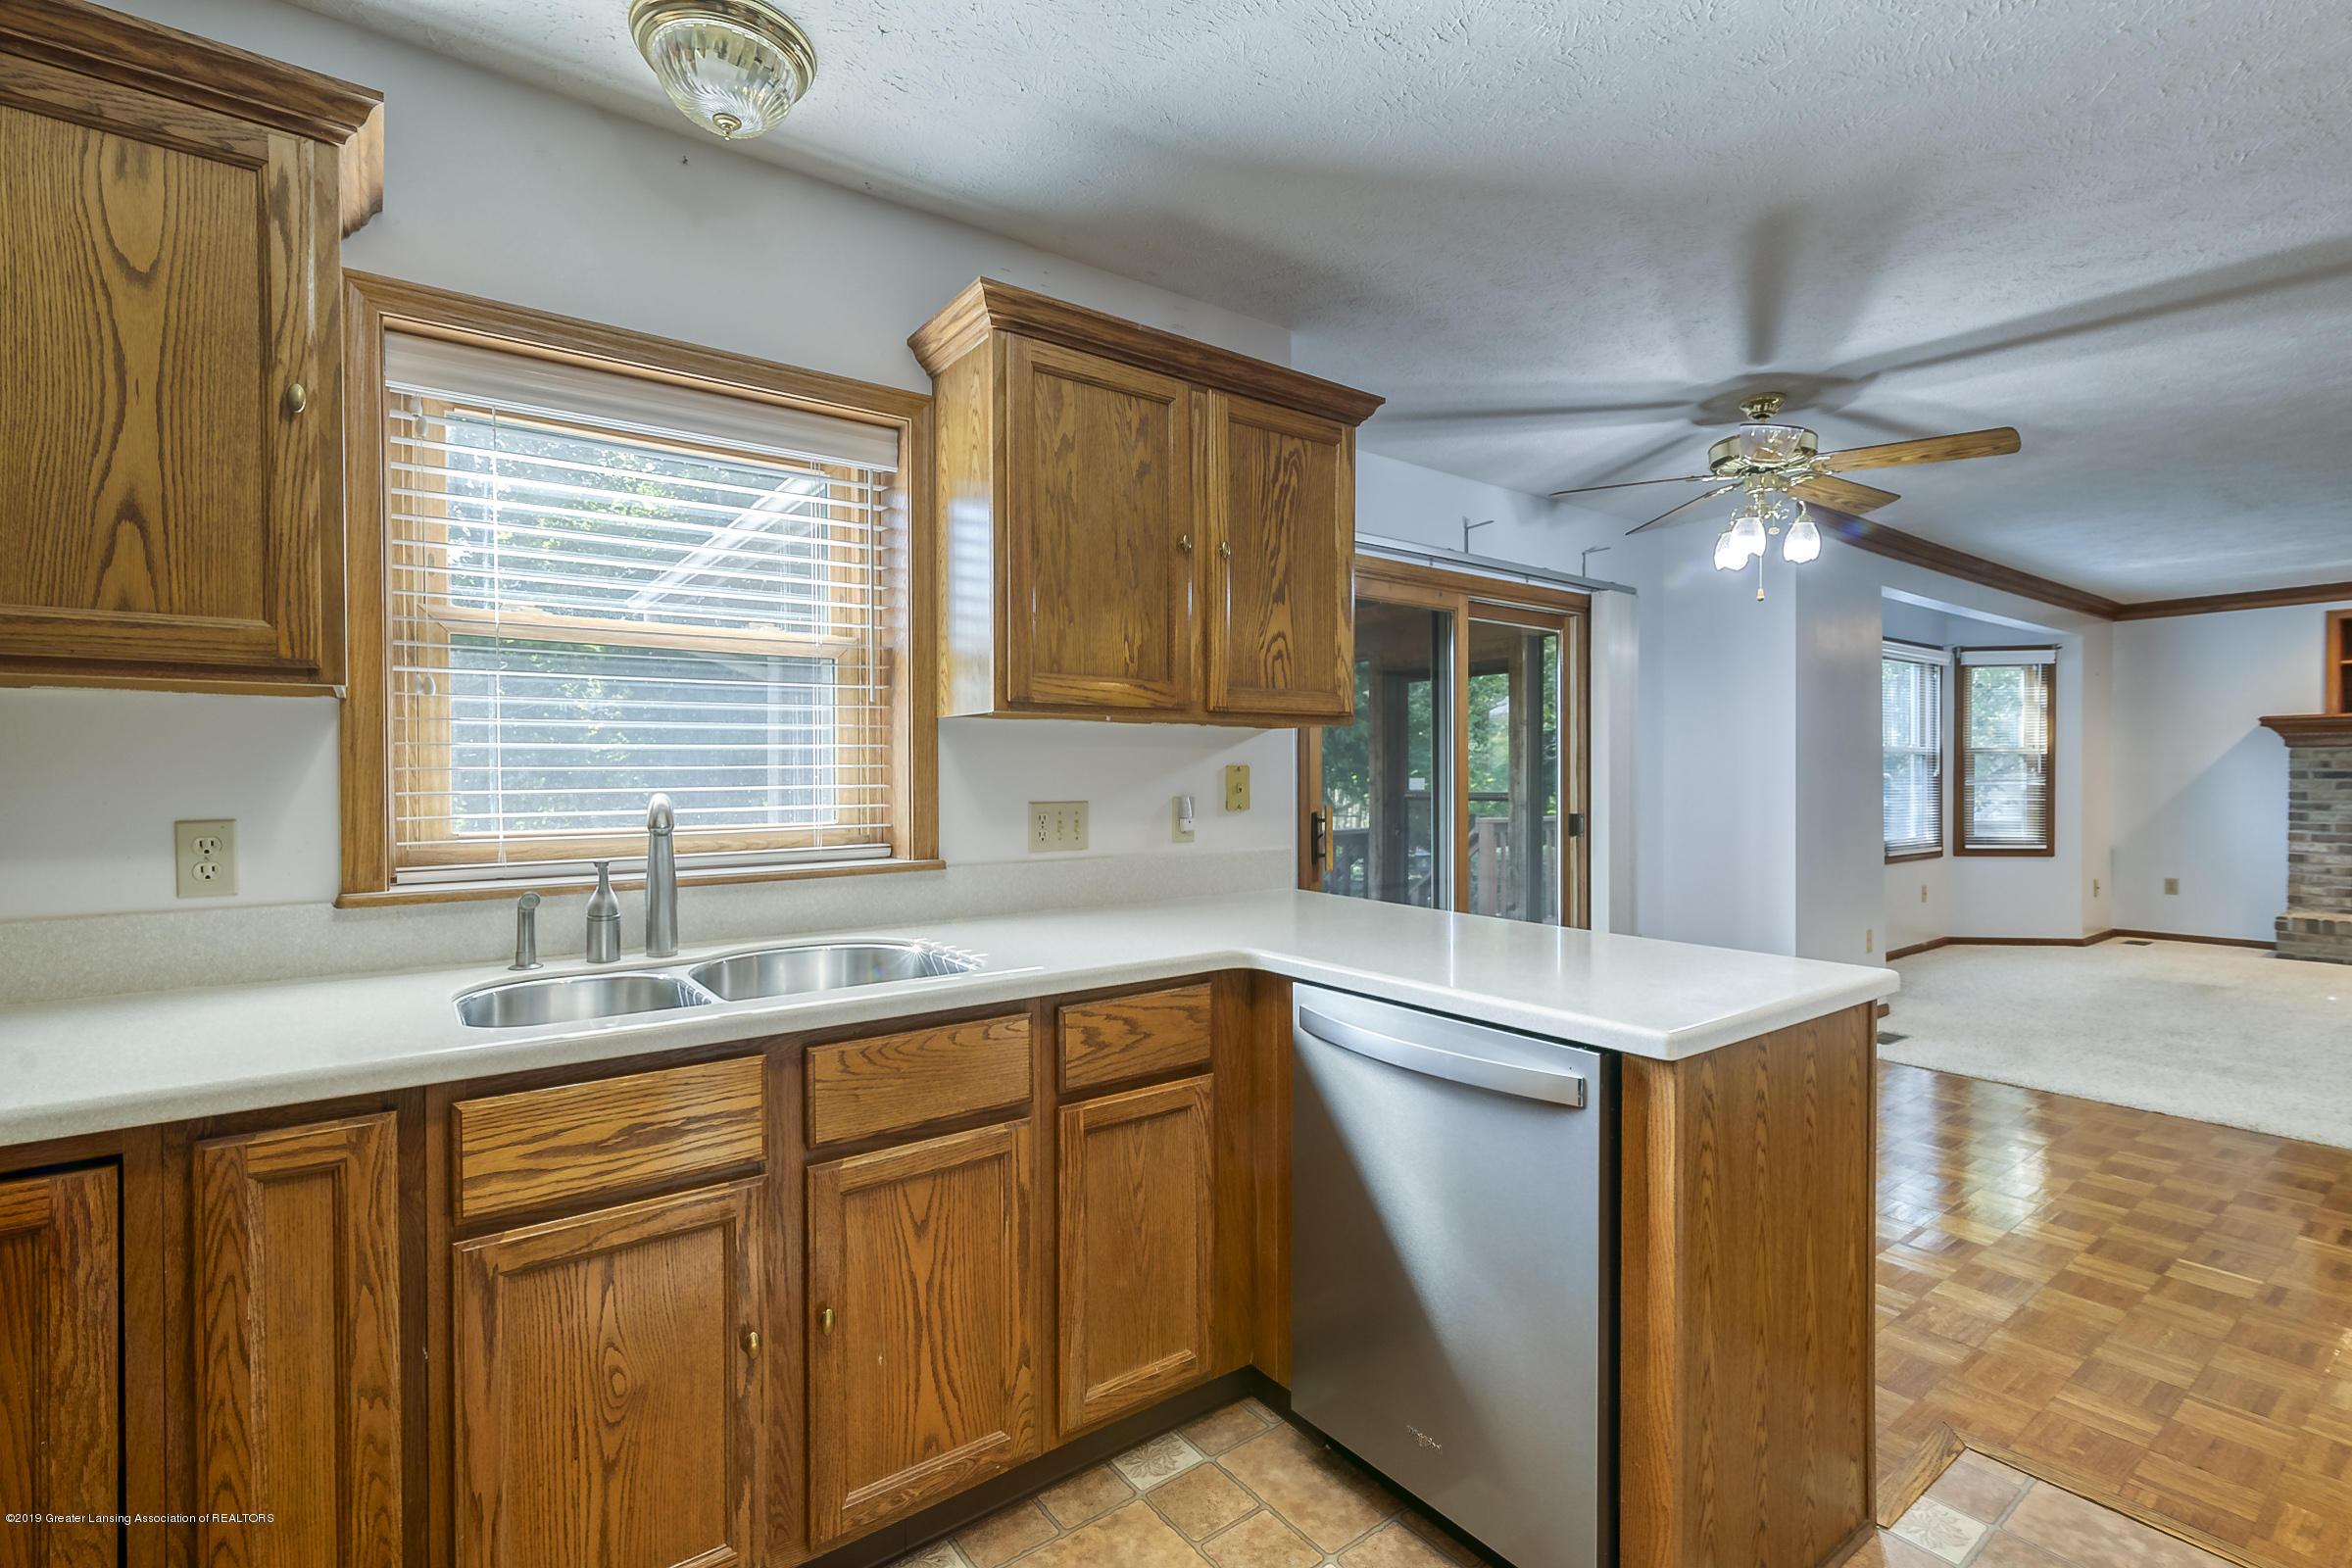 2343 Chisholm Ct - KITCHEN - 10